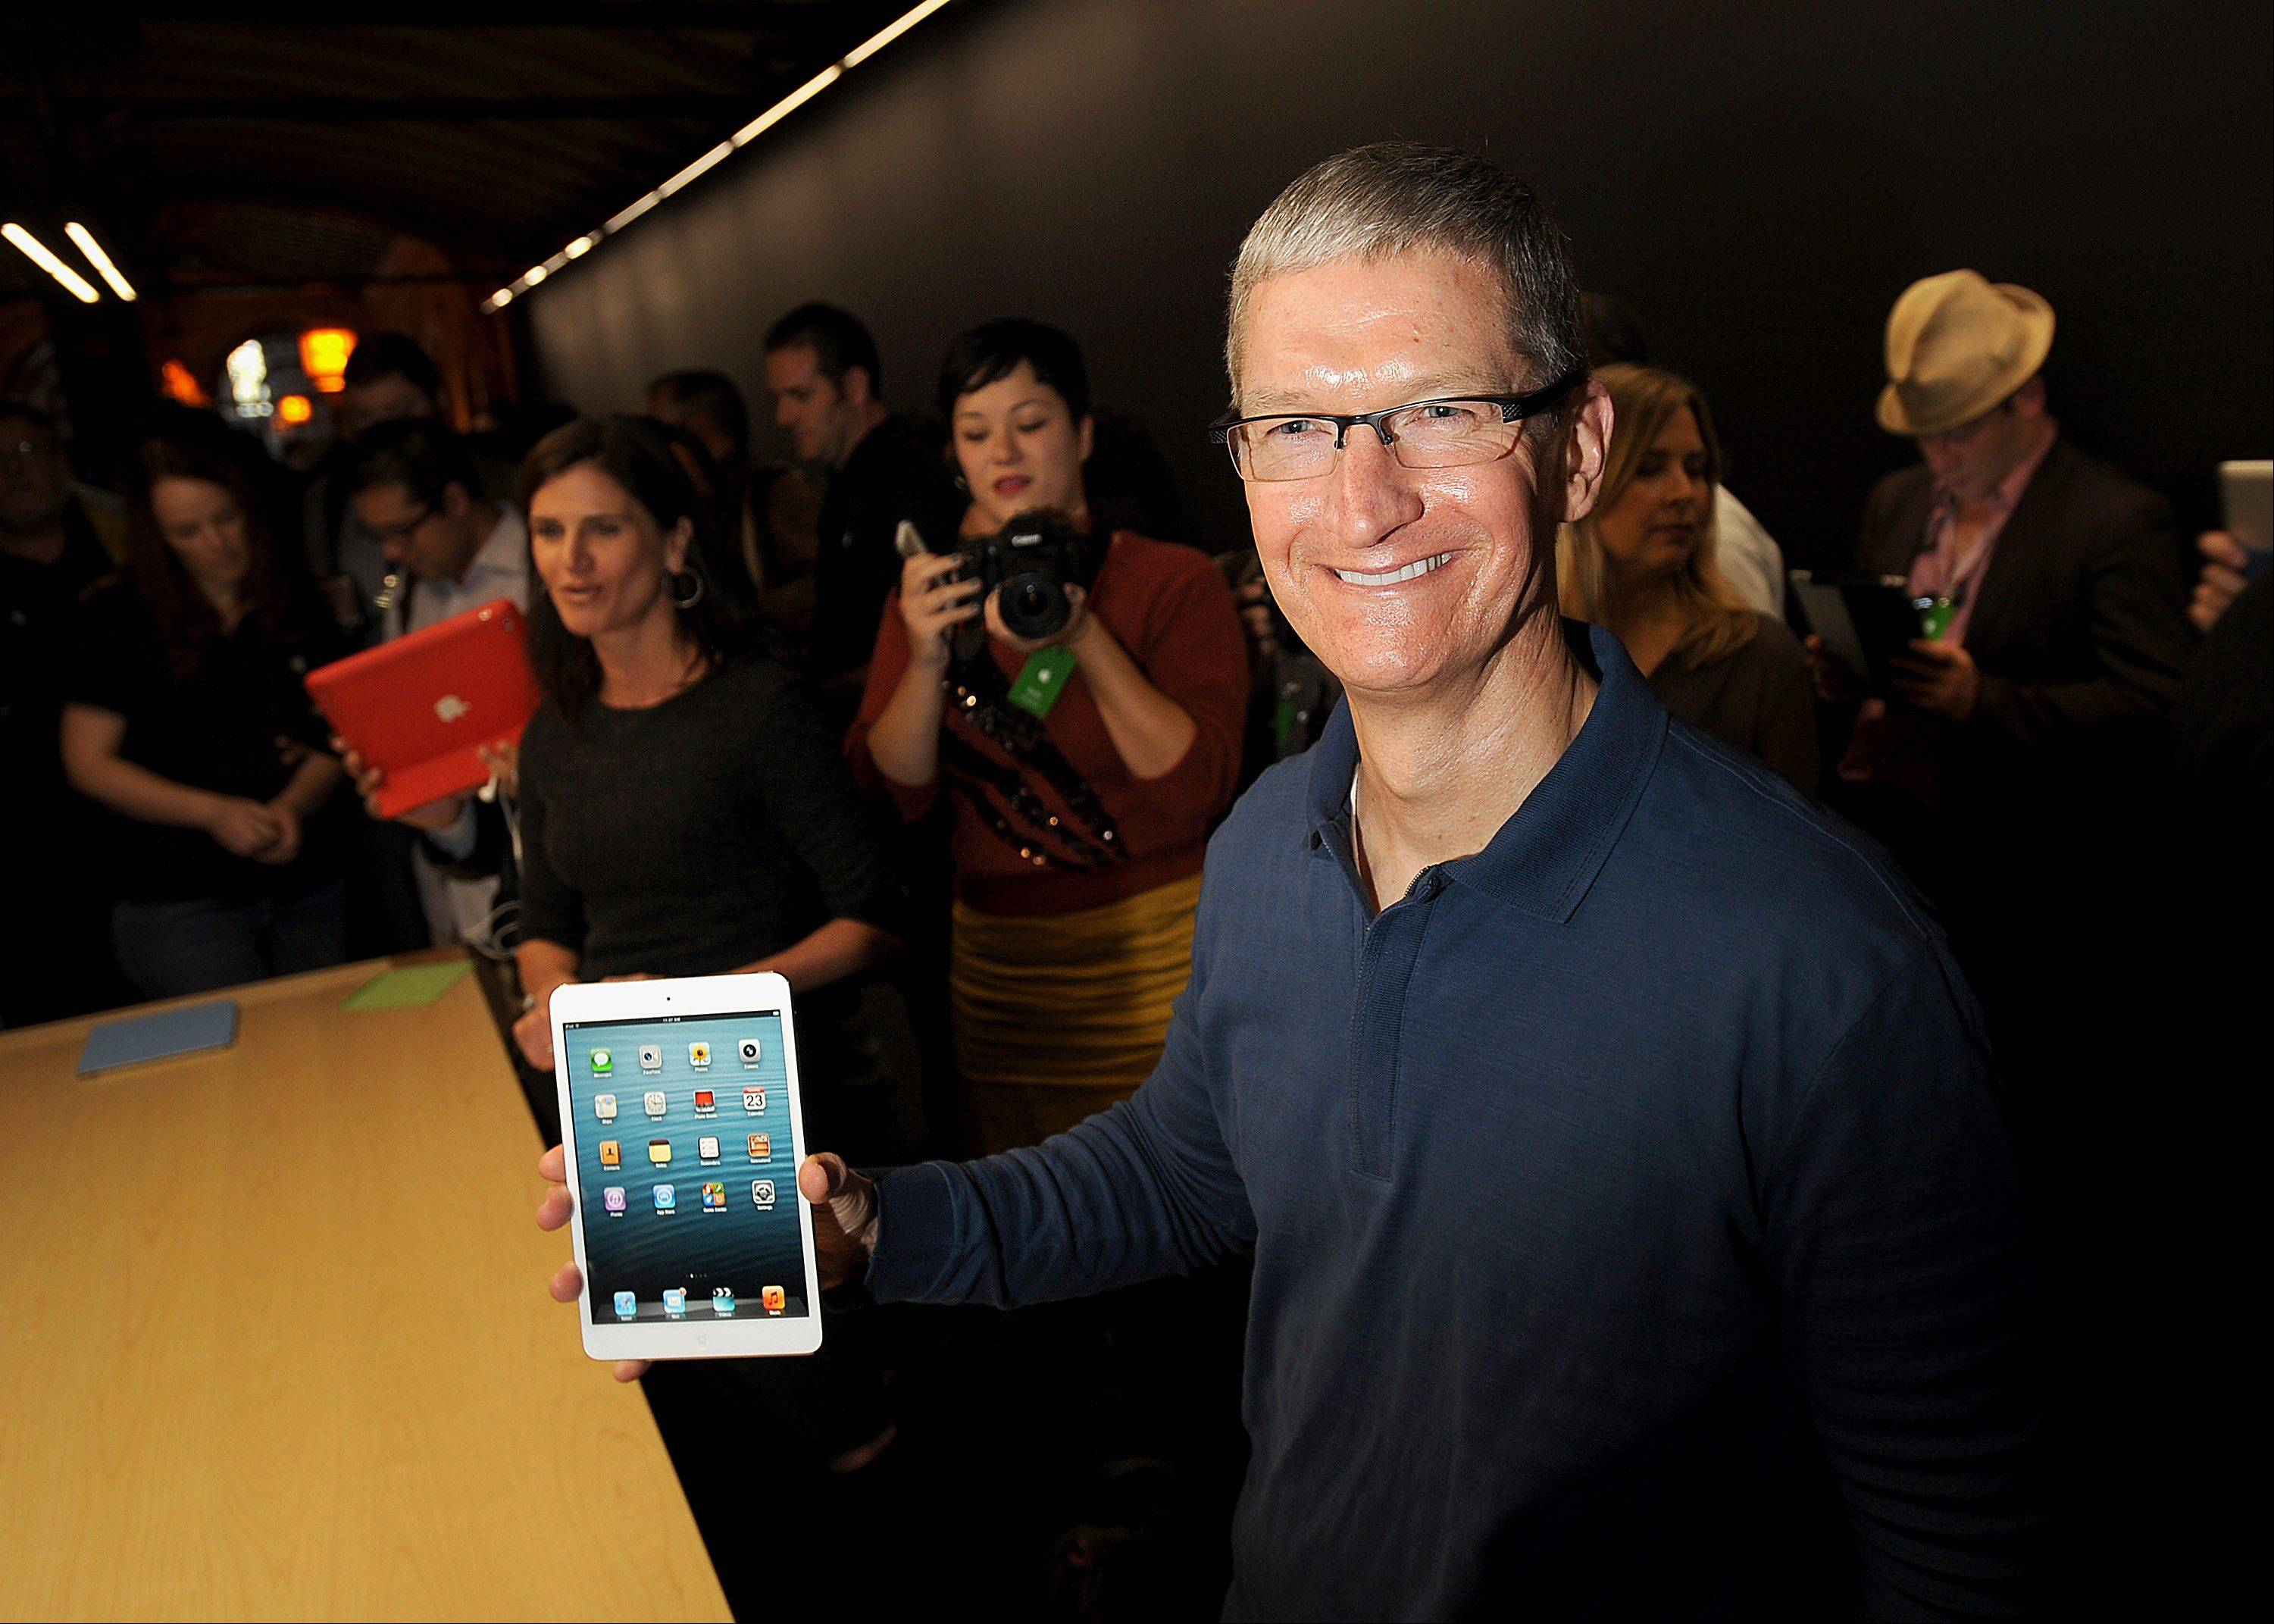 Tim Cook, chief executive officer of Apple Inc., holds an iPad Mini Tuesday during an event in San Jose, California. Apple Inc. introduced a smaller version of the iPad designed to keep customers from buying low-cost tablets from competitors Microsoft Corp., Amazon.com Inc. and Google Inc.